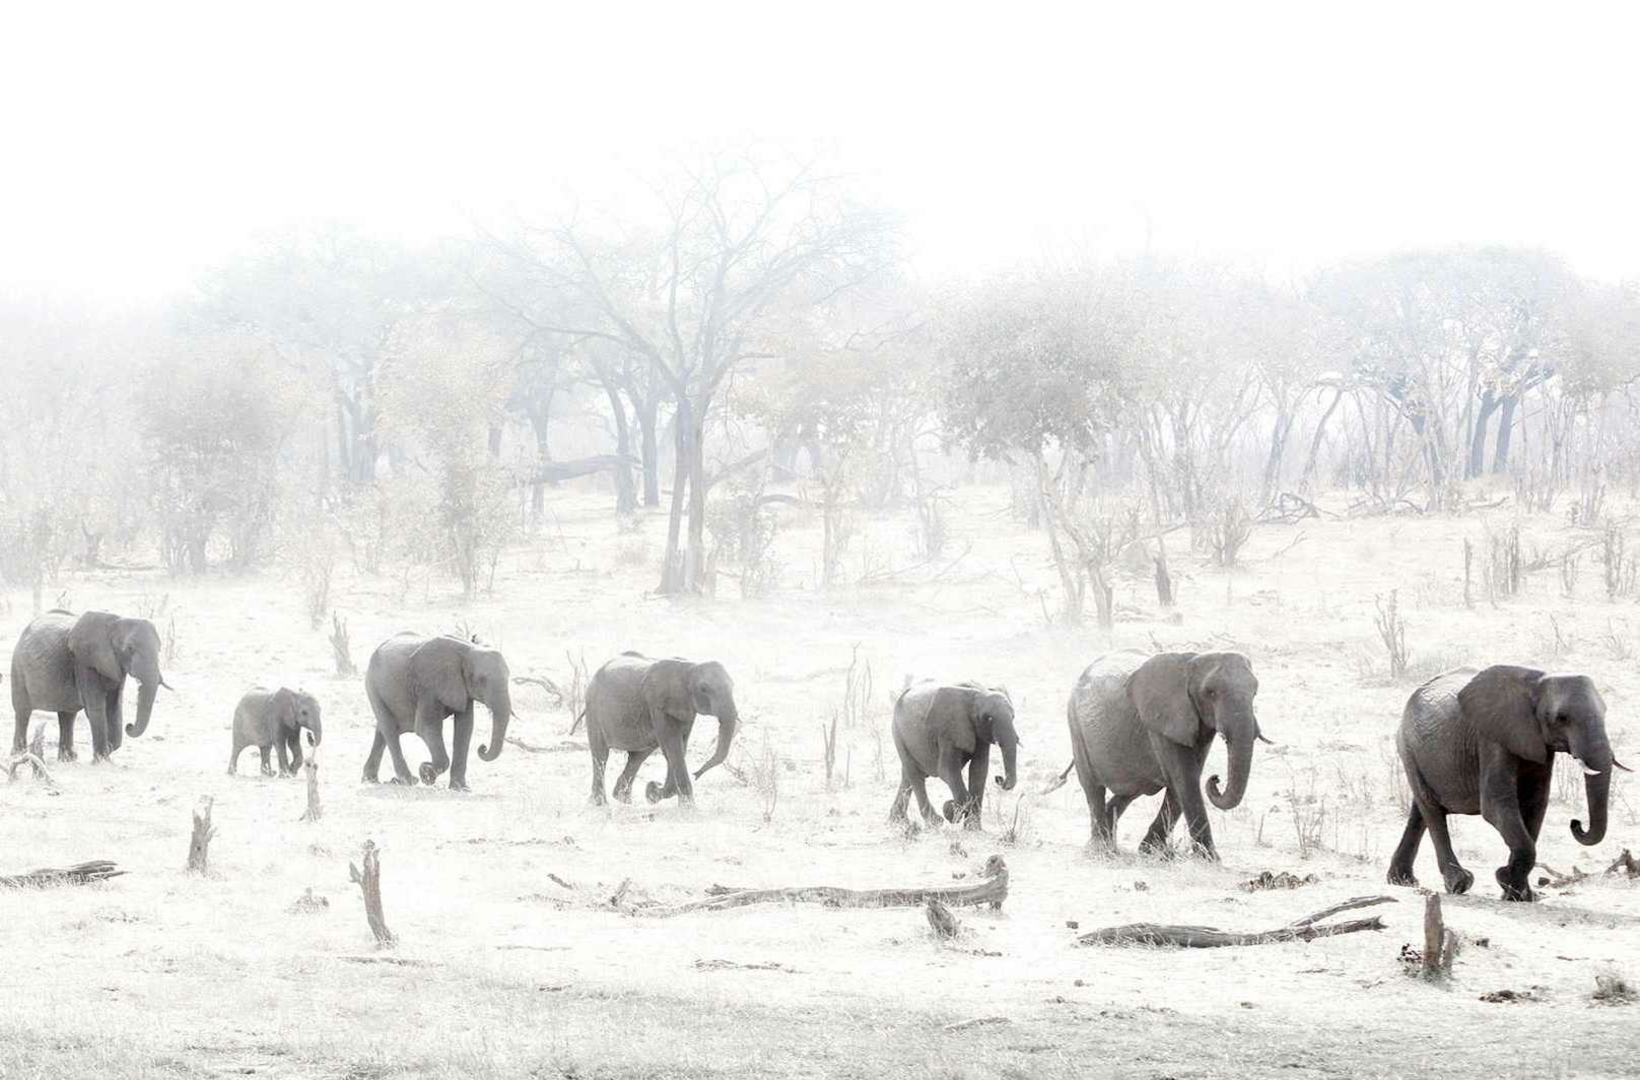 A train of African Elephants rushes through a dusty plain of Hwange National Park Zimbabwe towards a source of water